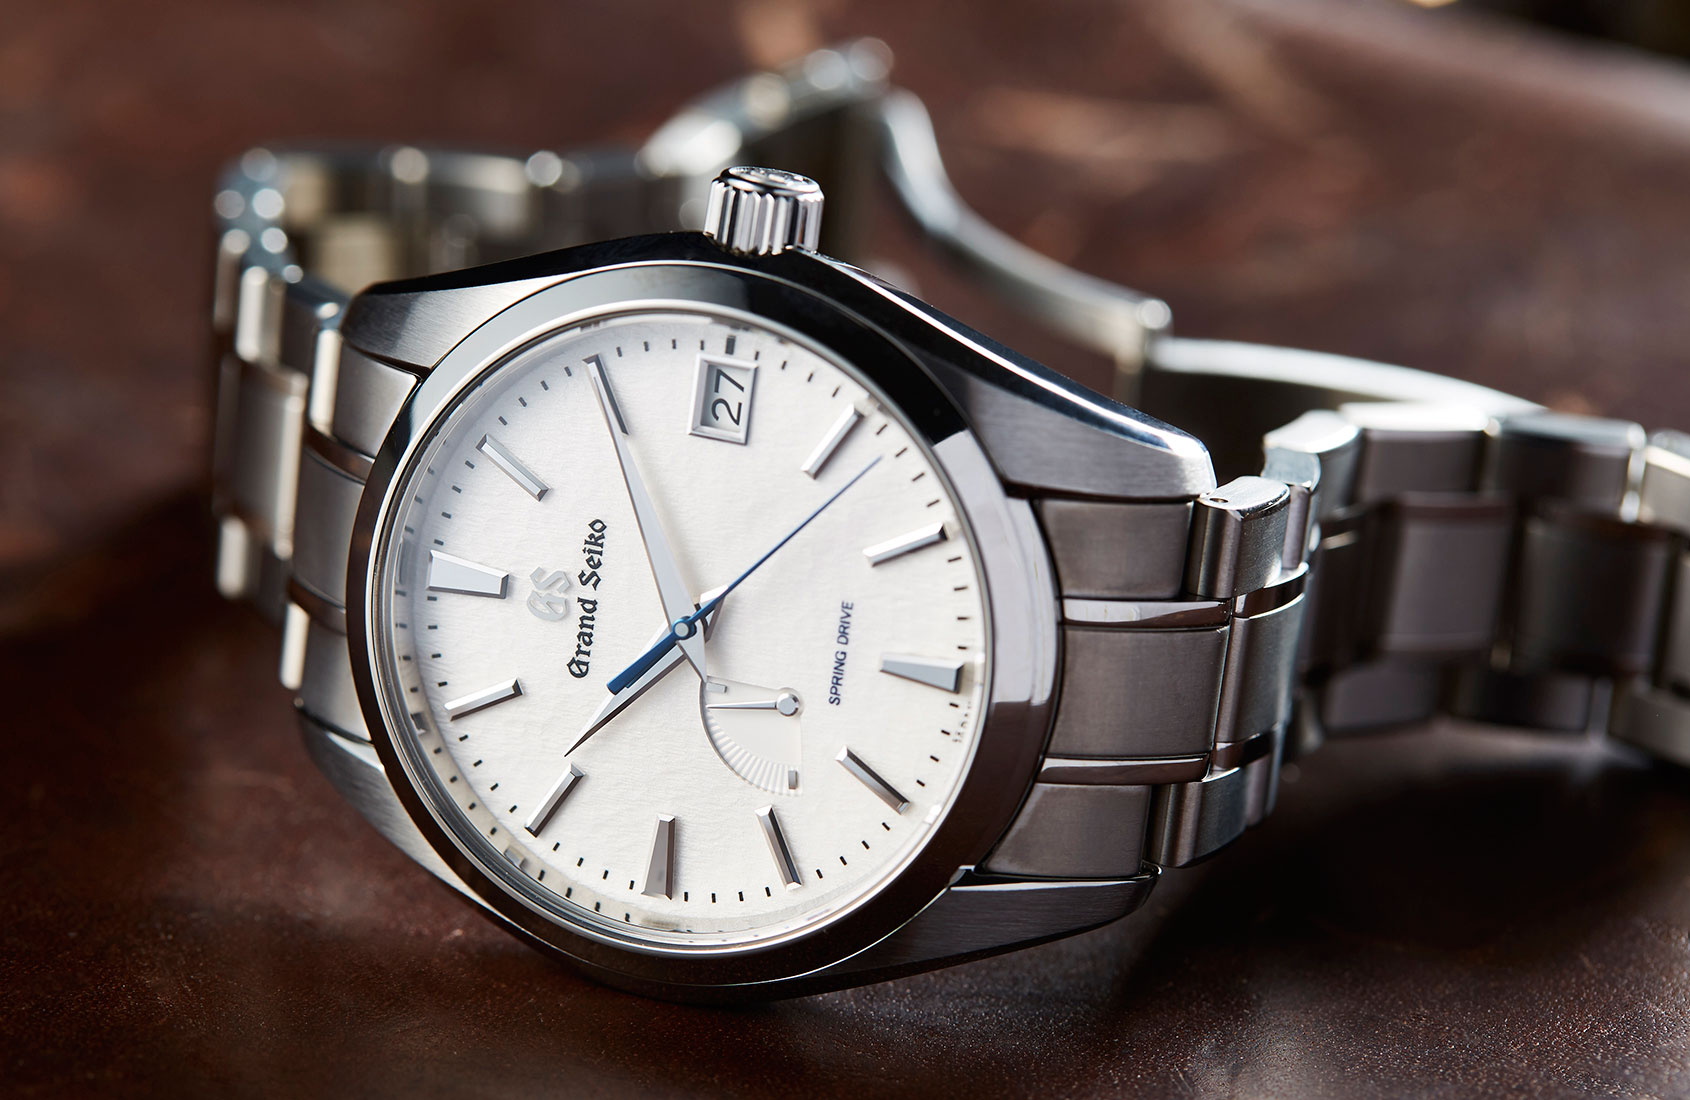 EDITOR'S PICK: What's cooler than being cool? The Grand Seiko SBGA211 Snowflake